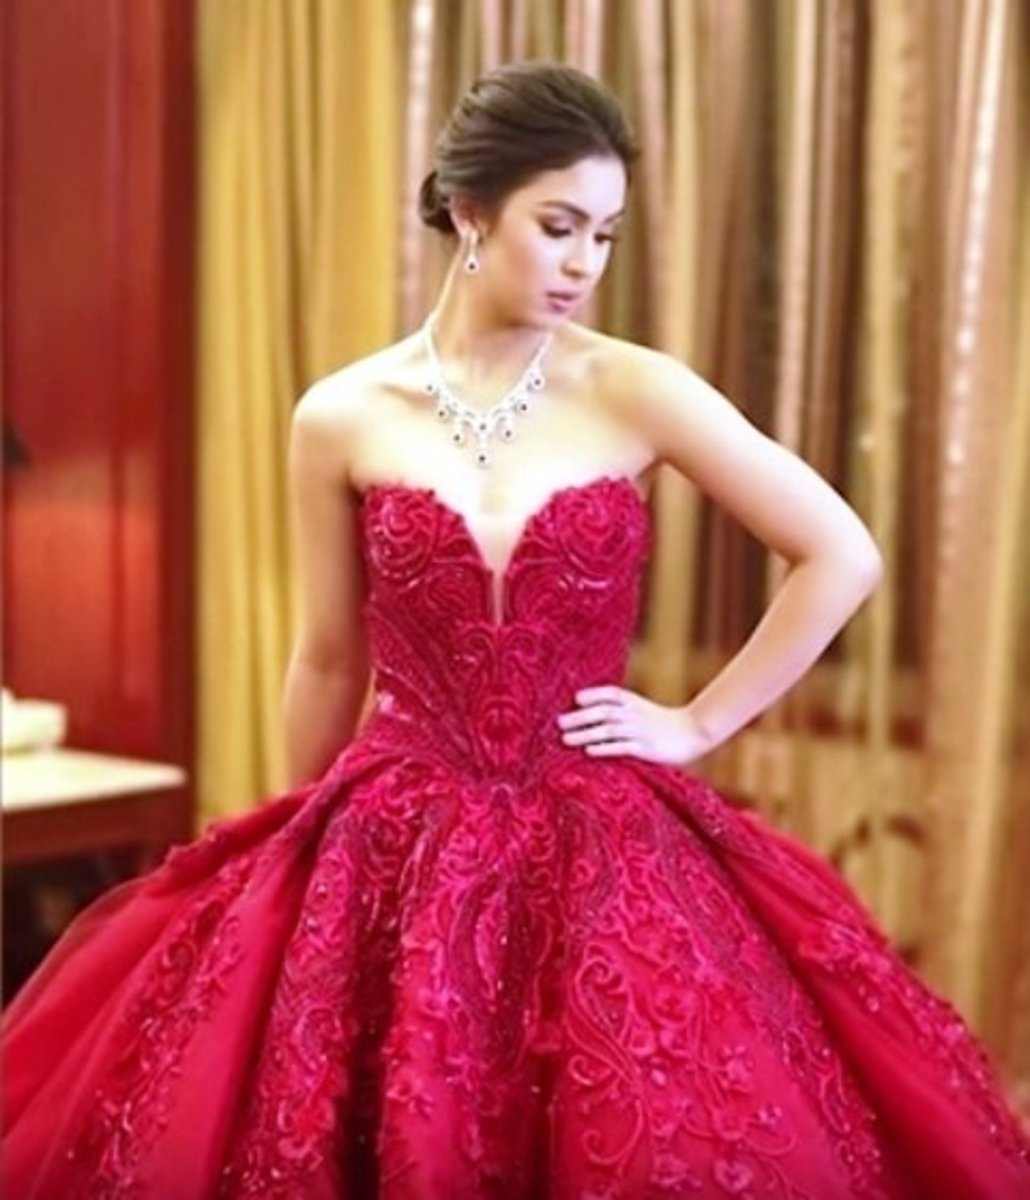 Julia Barretto @ 18 debut gown.